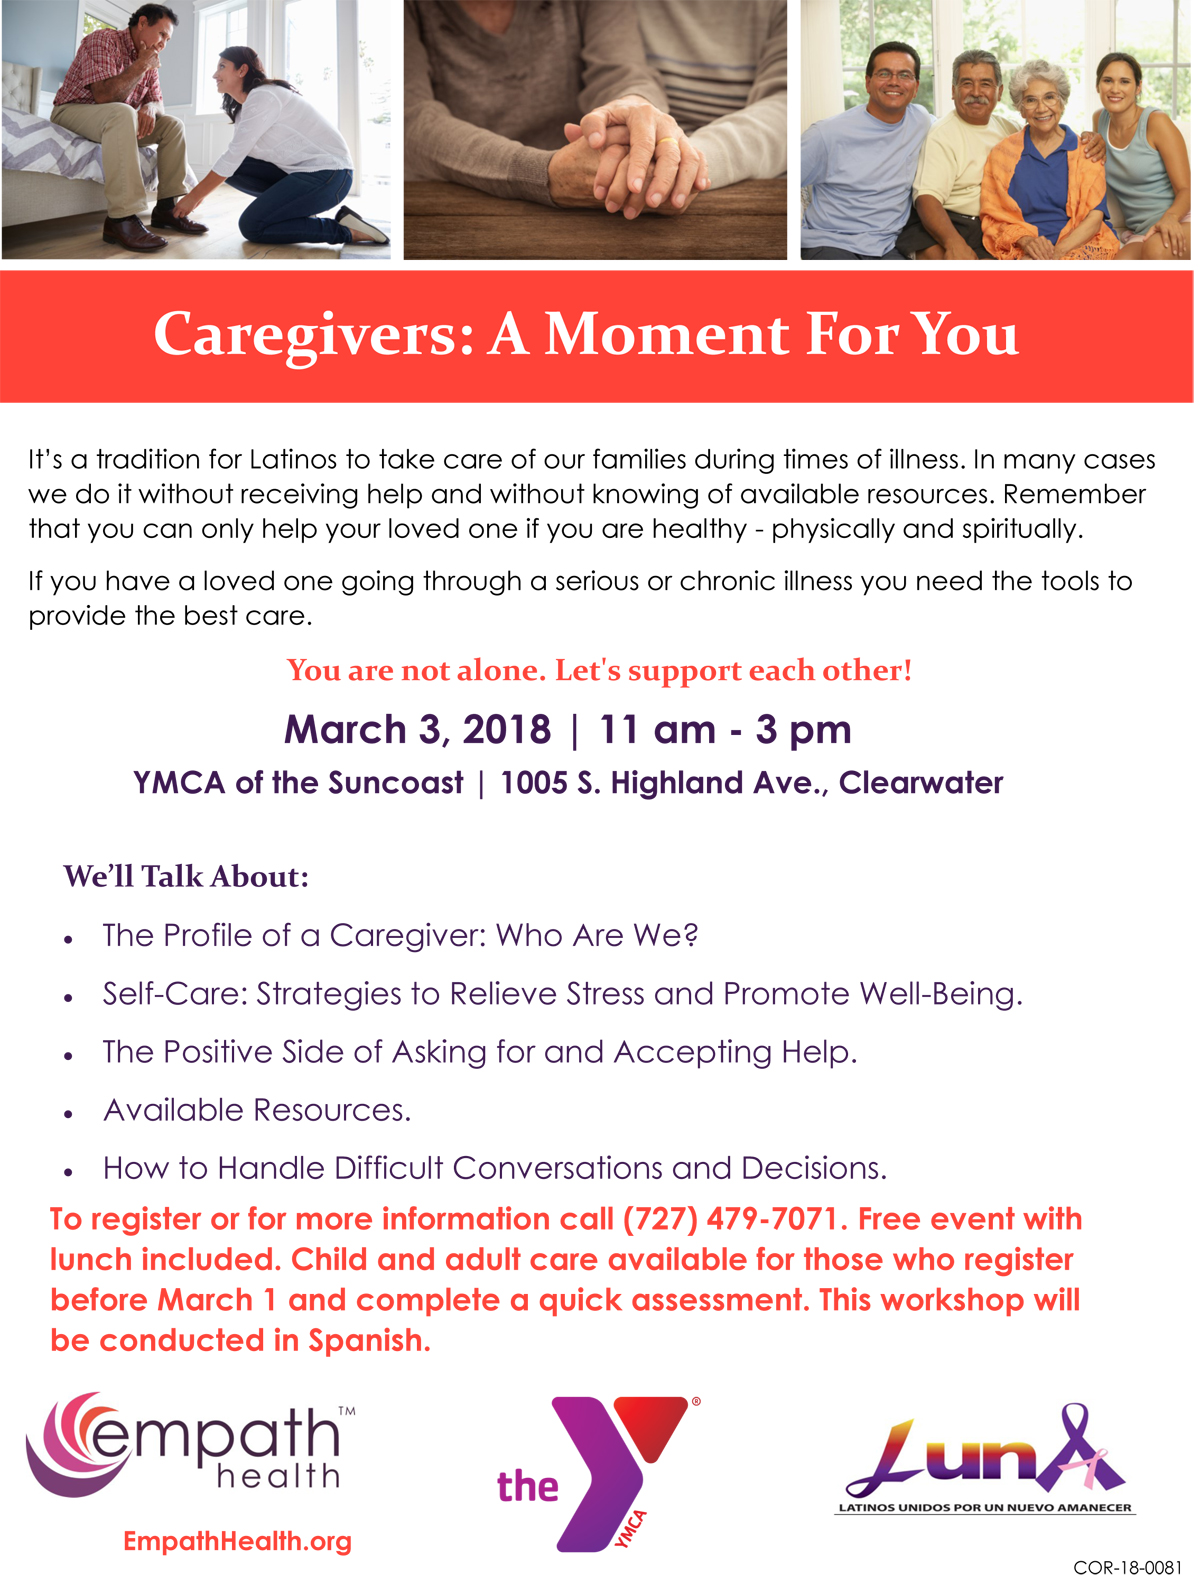 Caregivers: A Moment For You (This workshop is conducted in Spanish) @ YMCA of the Suncoast  | Clearwater | Florida | United States